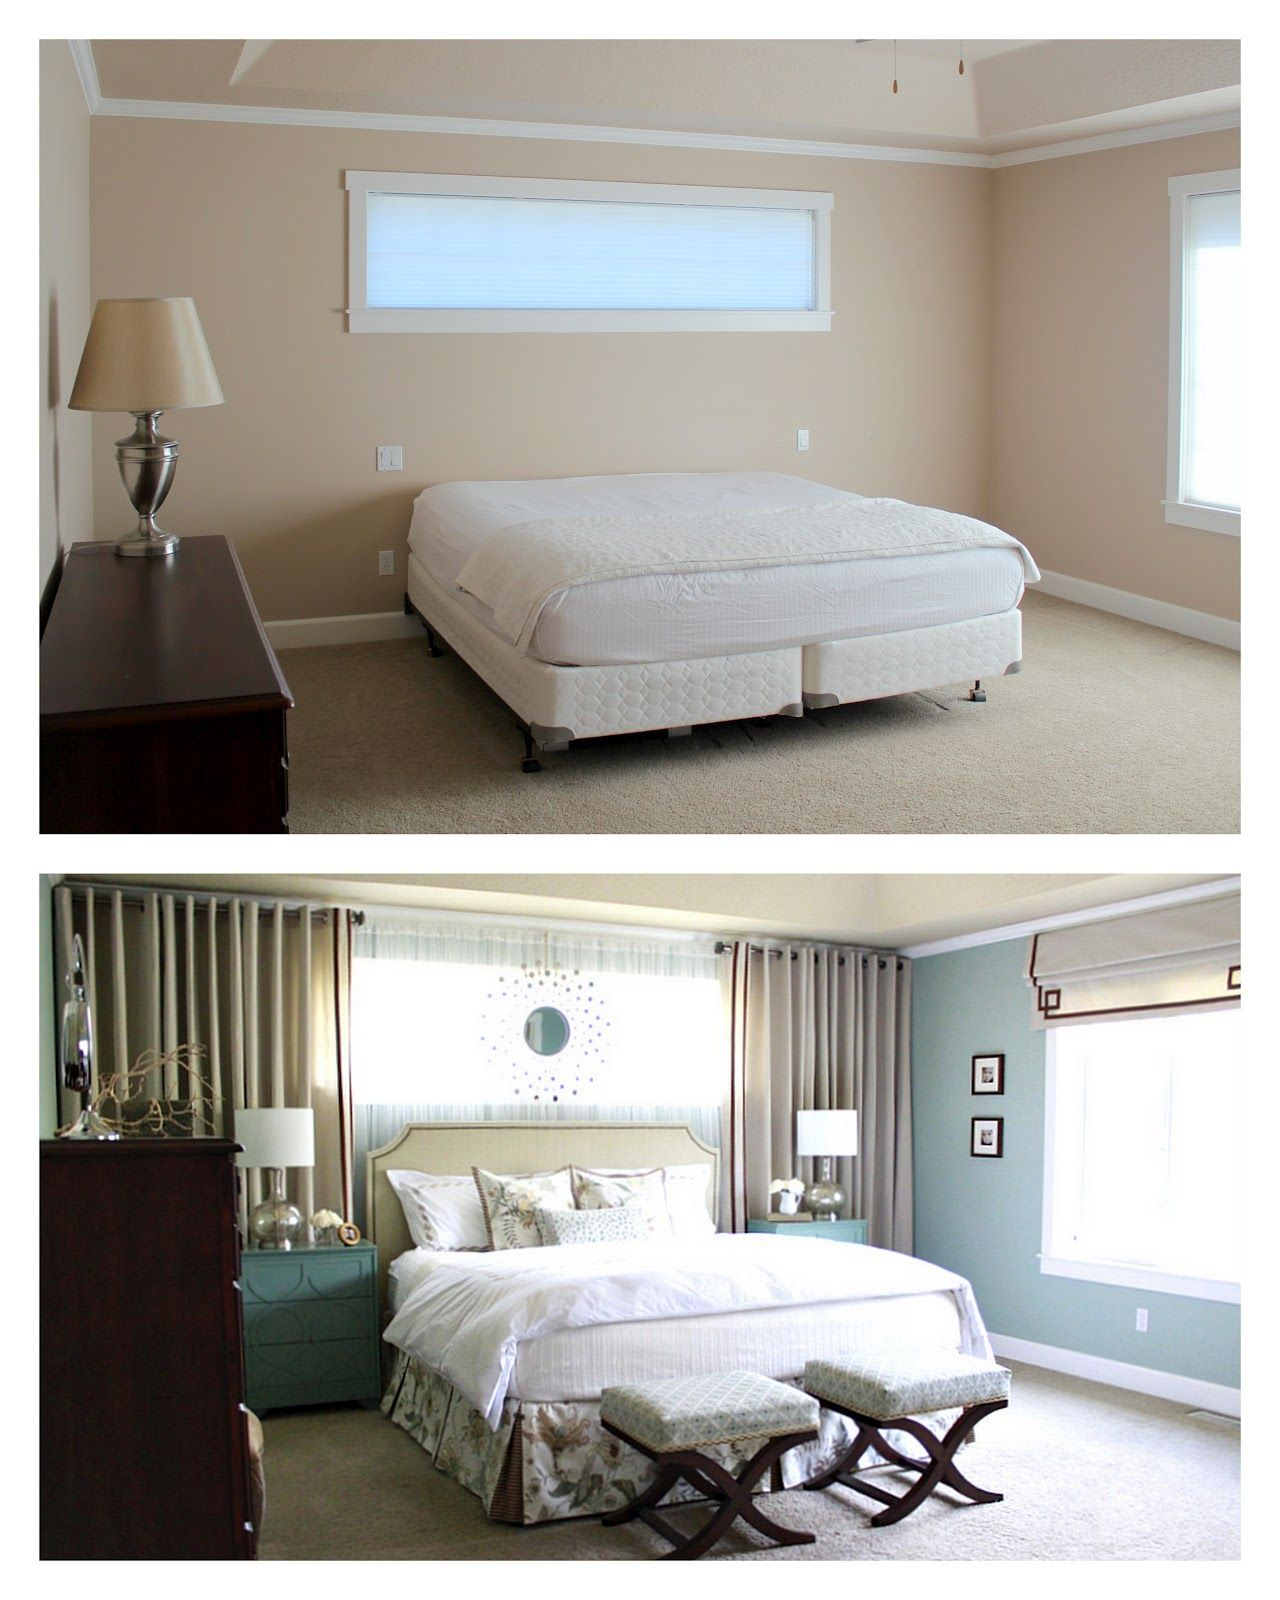 Master bedroom reveal curtains around bed mirrors above long dresser wall colors ladi No dresser in master bedroom